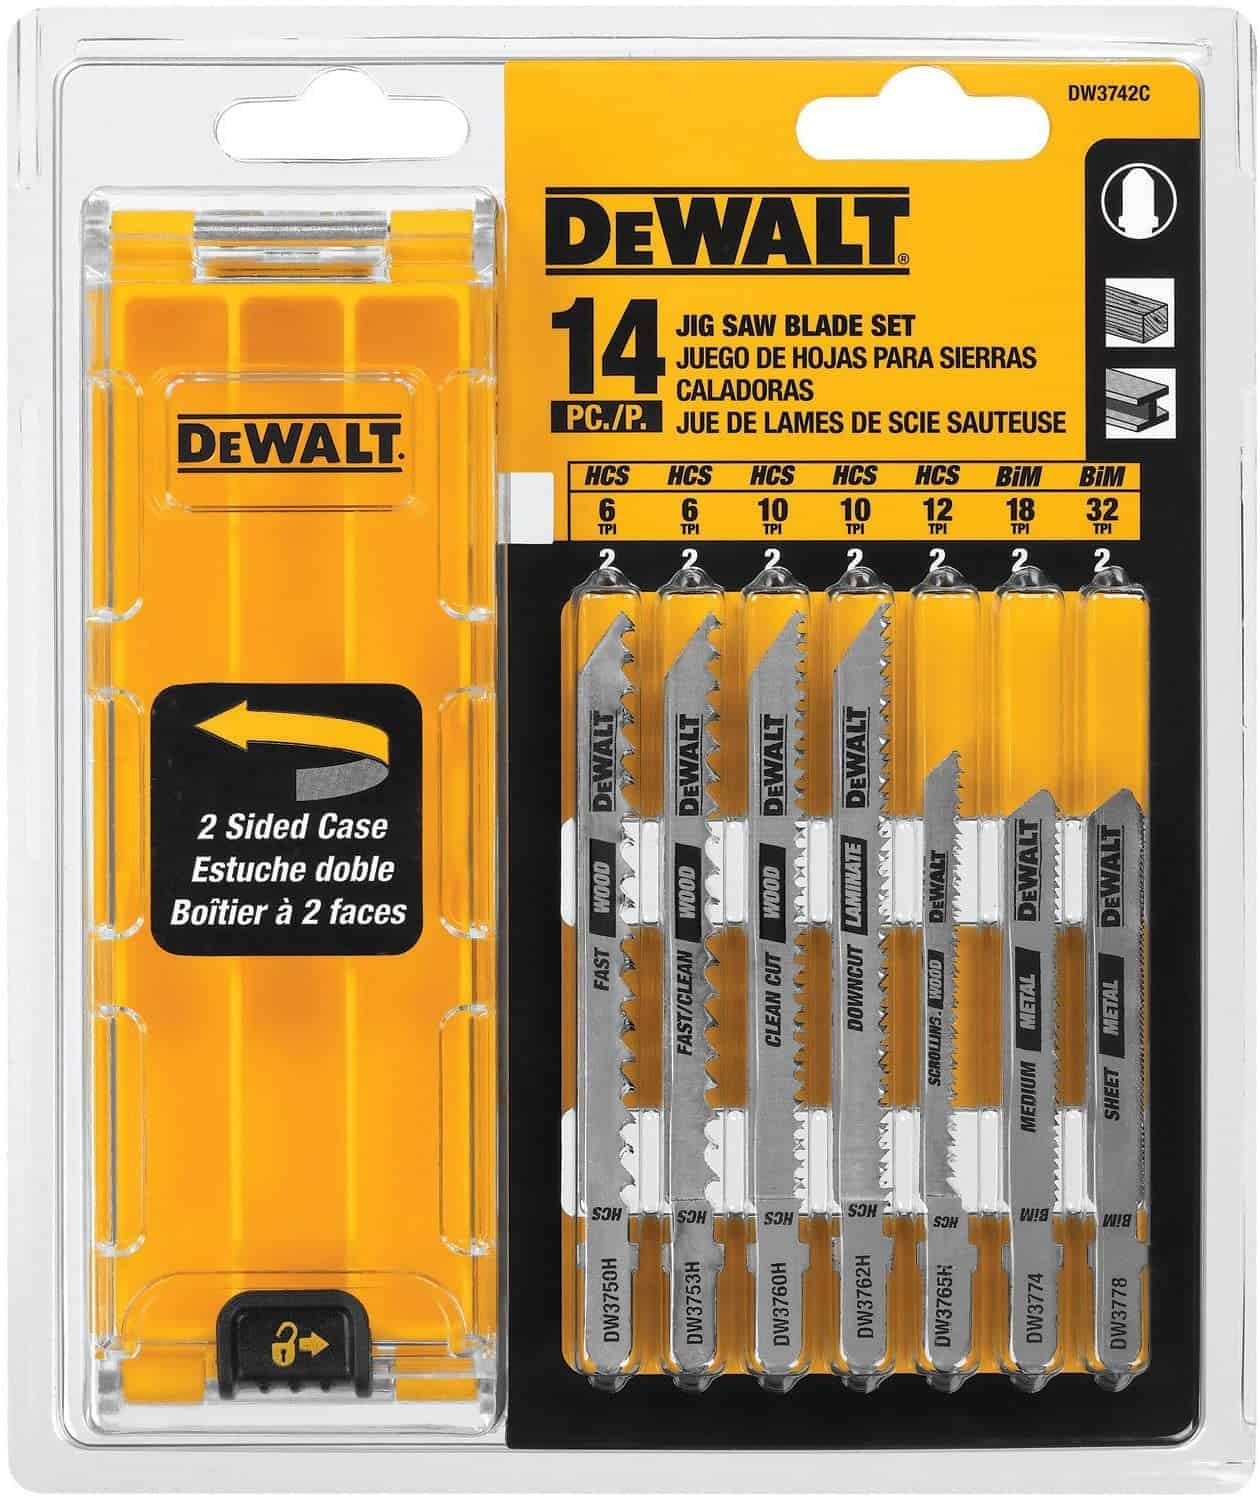 best jigsaw for blades 2021, DEWALT Jigsaw Blades Set with Case